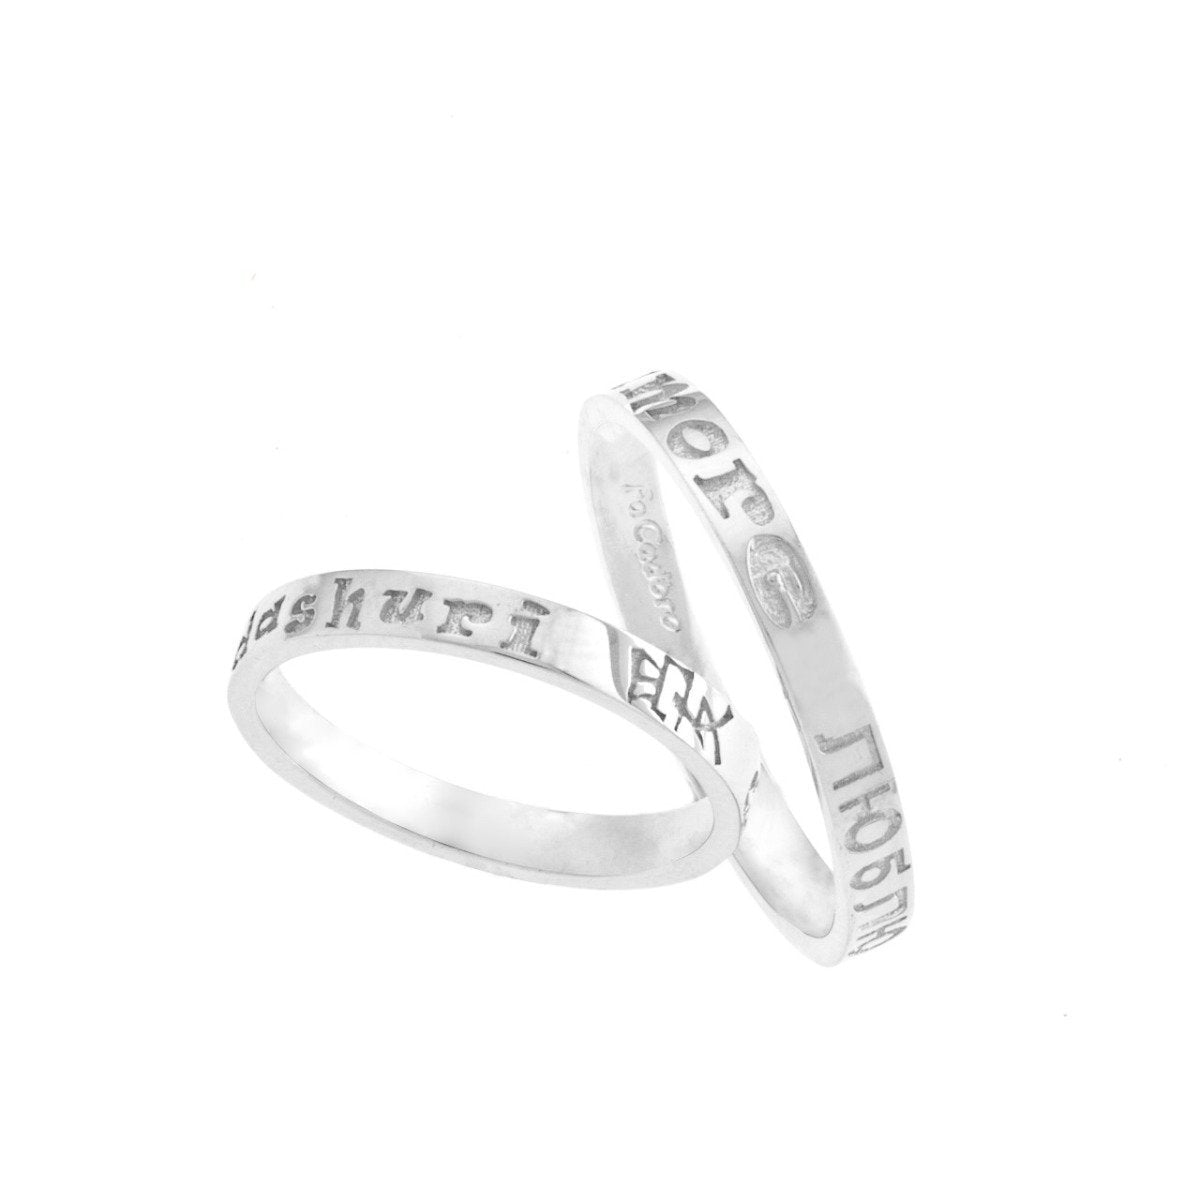 FaCad'oro WR-60 14ct Gold Wedding Ring - Goldy Jewelry Store